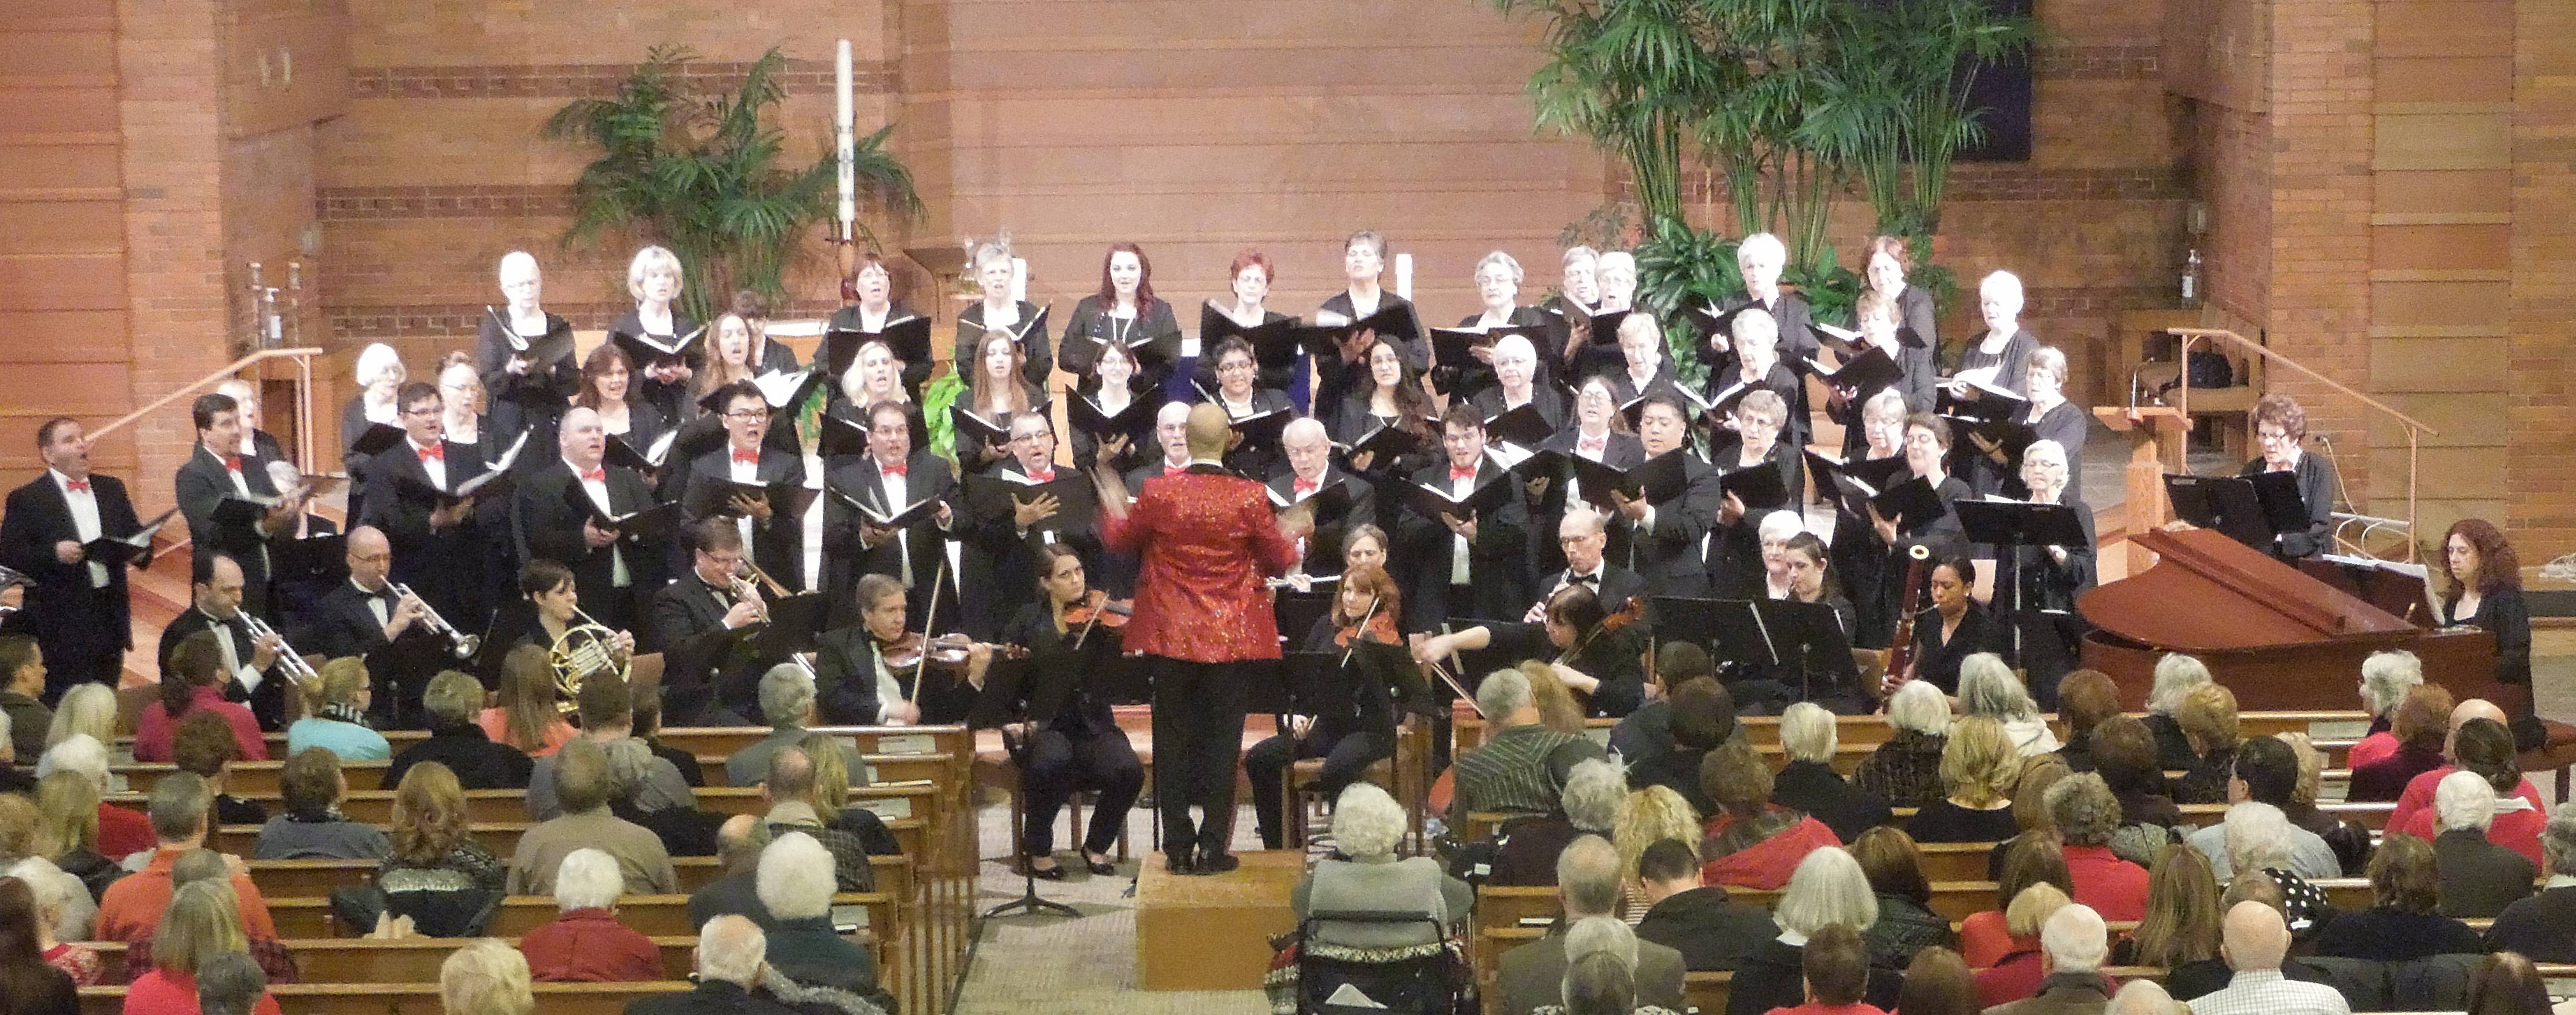 The Northwest Choral Society presents its 2014 holiday concert at St. Raymond's Church in Mt. Prospect, IL. Northwest Choral Society